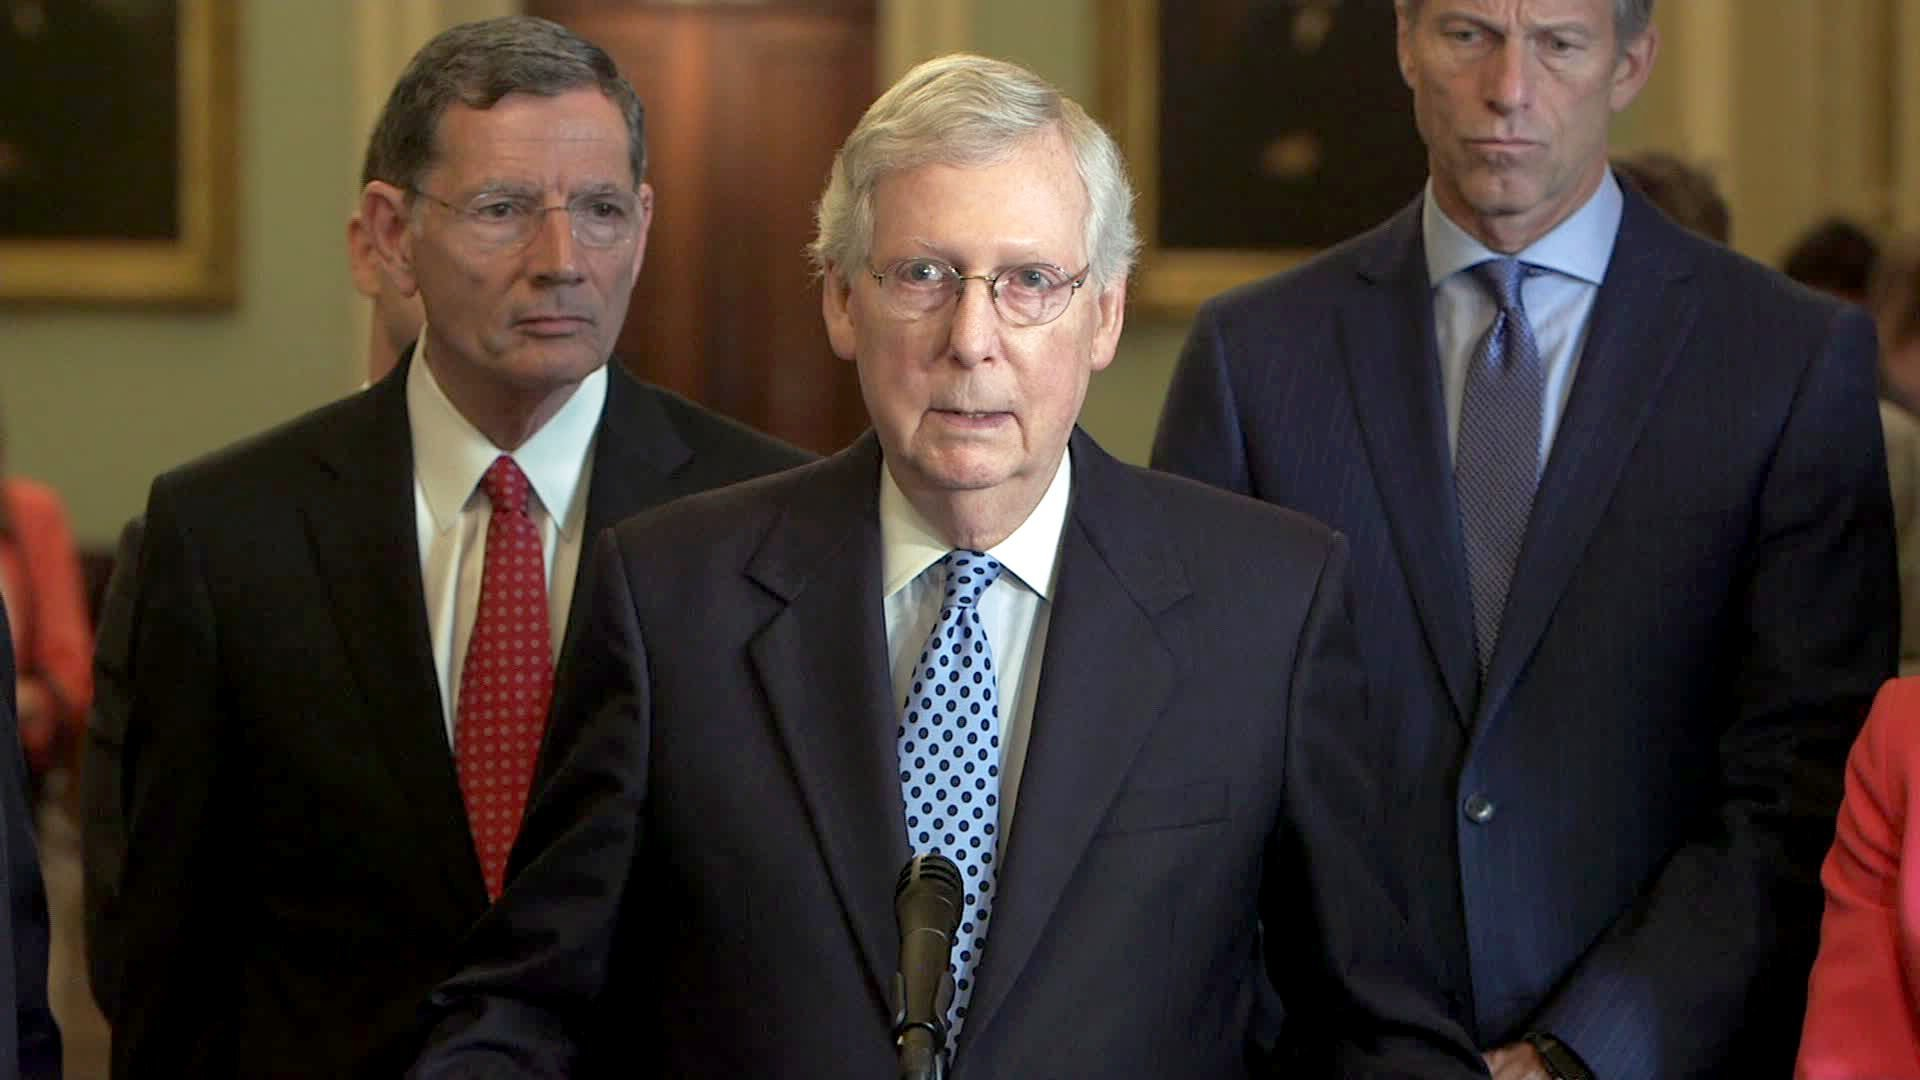 McConnell: Strong legislative filibuster is needed to block 'whims of those on the far left'